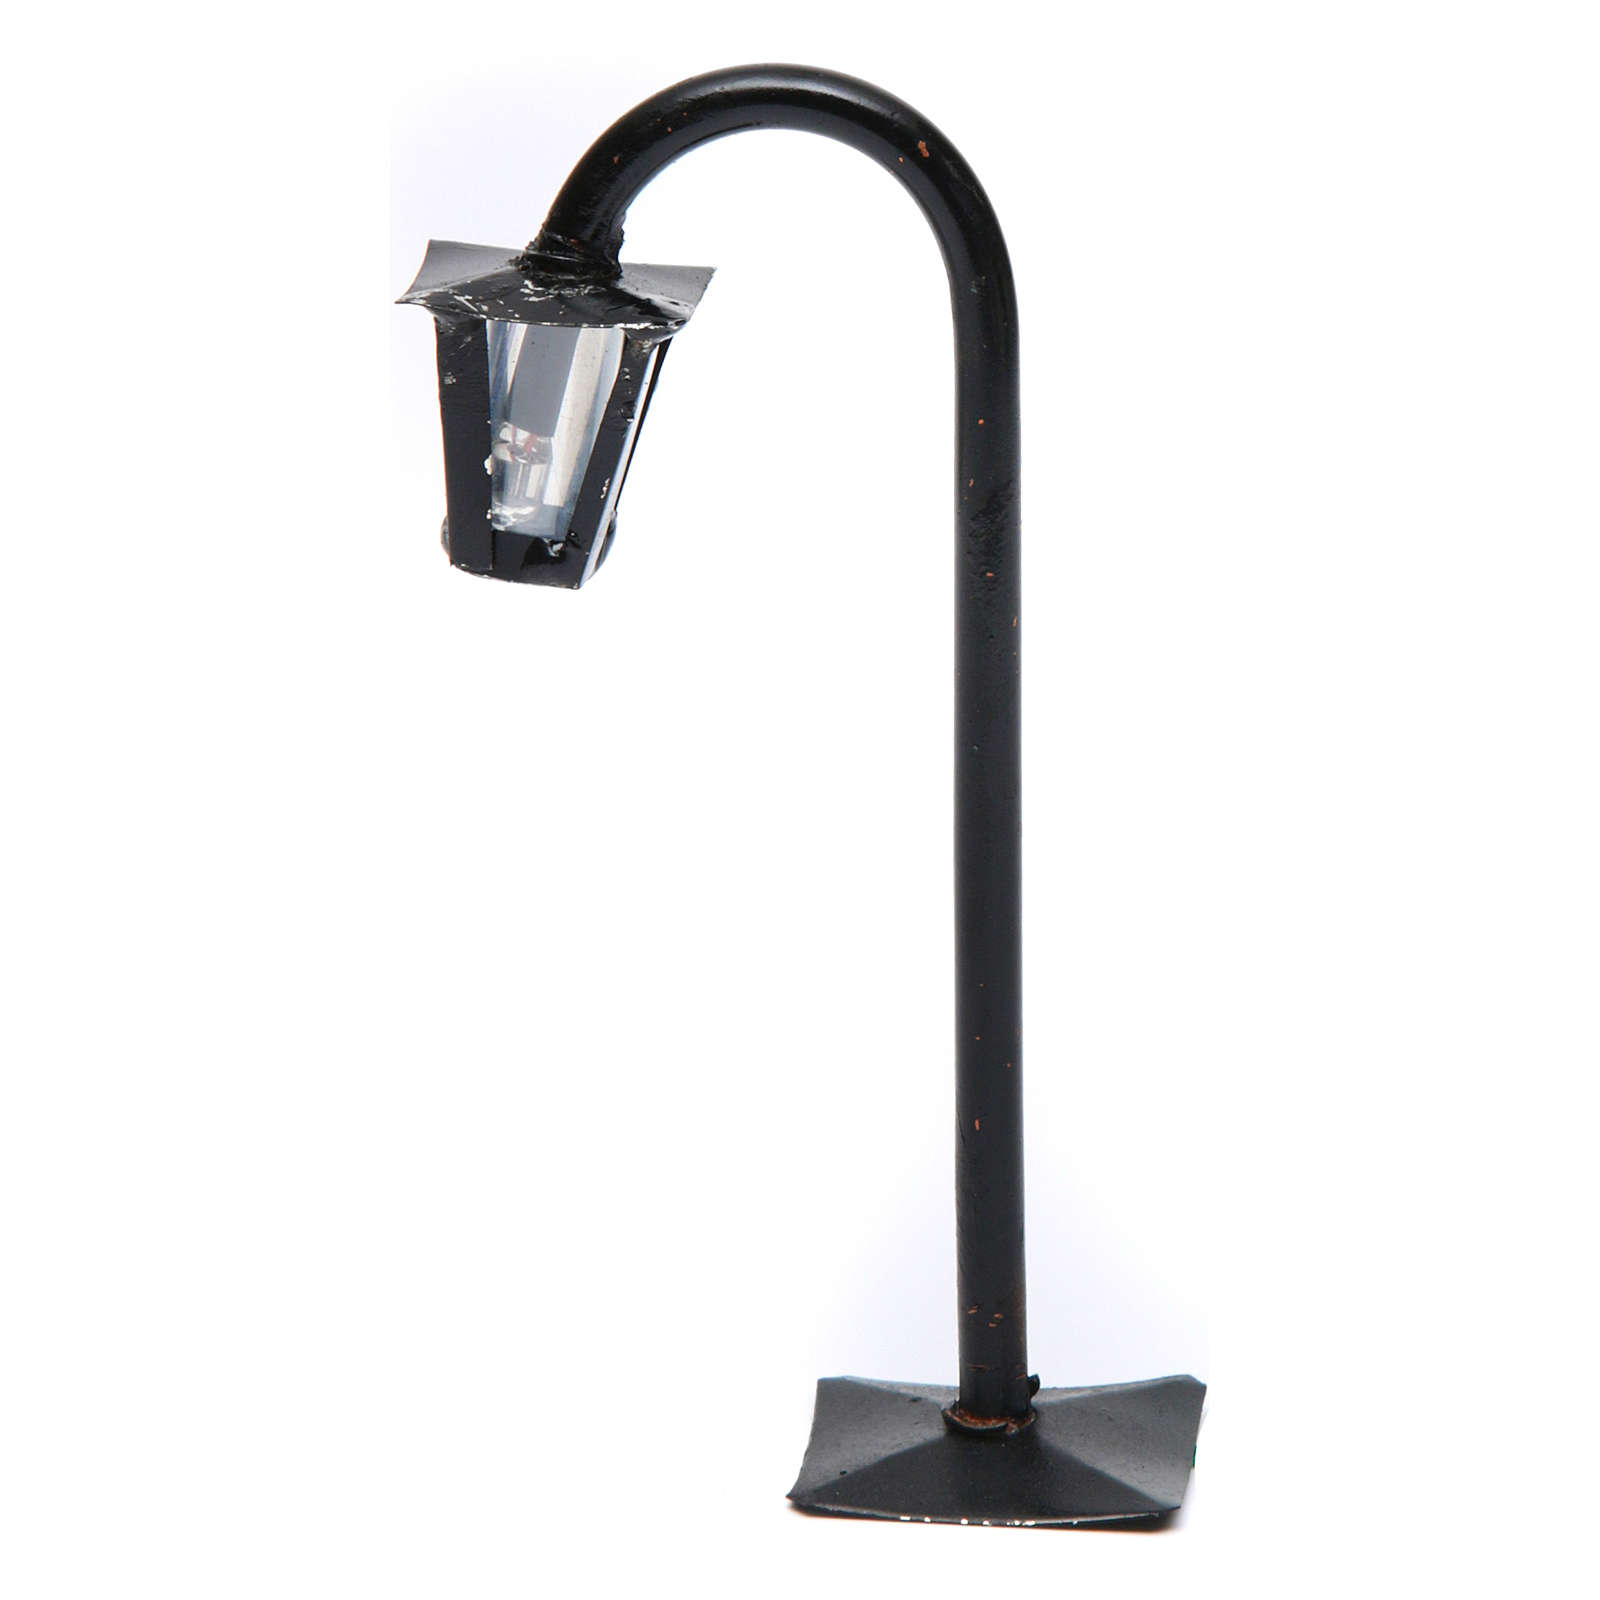 Curved streetlight with lantern real height 13 cm for Neapolitan Nativity Scene 4